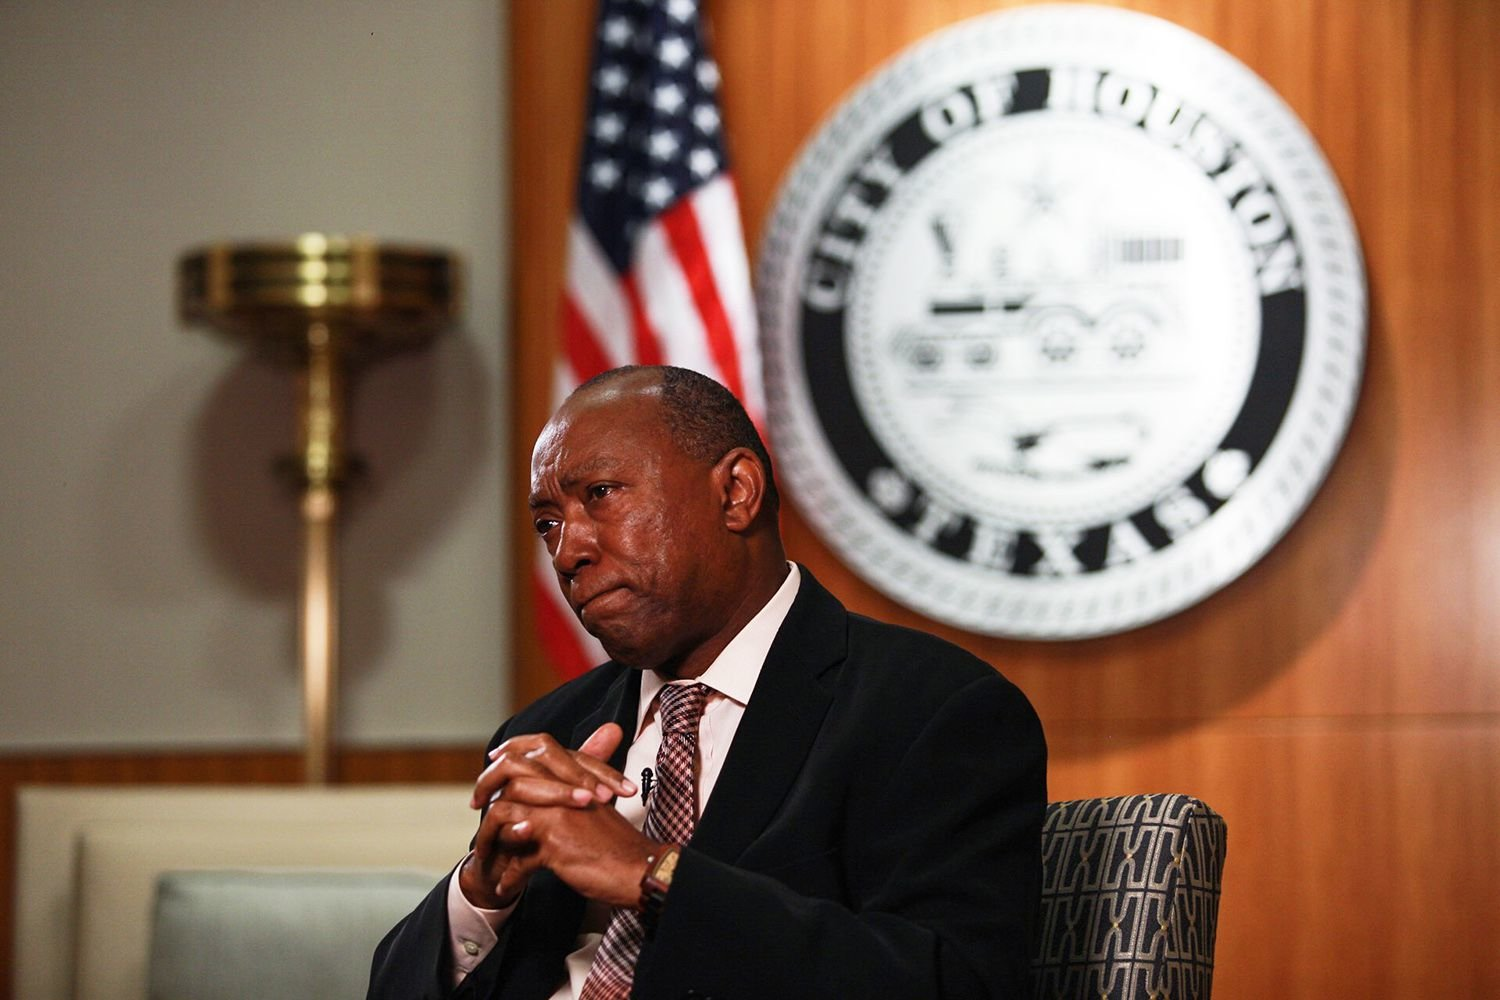 Houston Mayor Sylvester Turner on Wednesday directed city staff to find a legal way to cancel the Republican Party of Texas' in-person convention in the city next week.